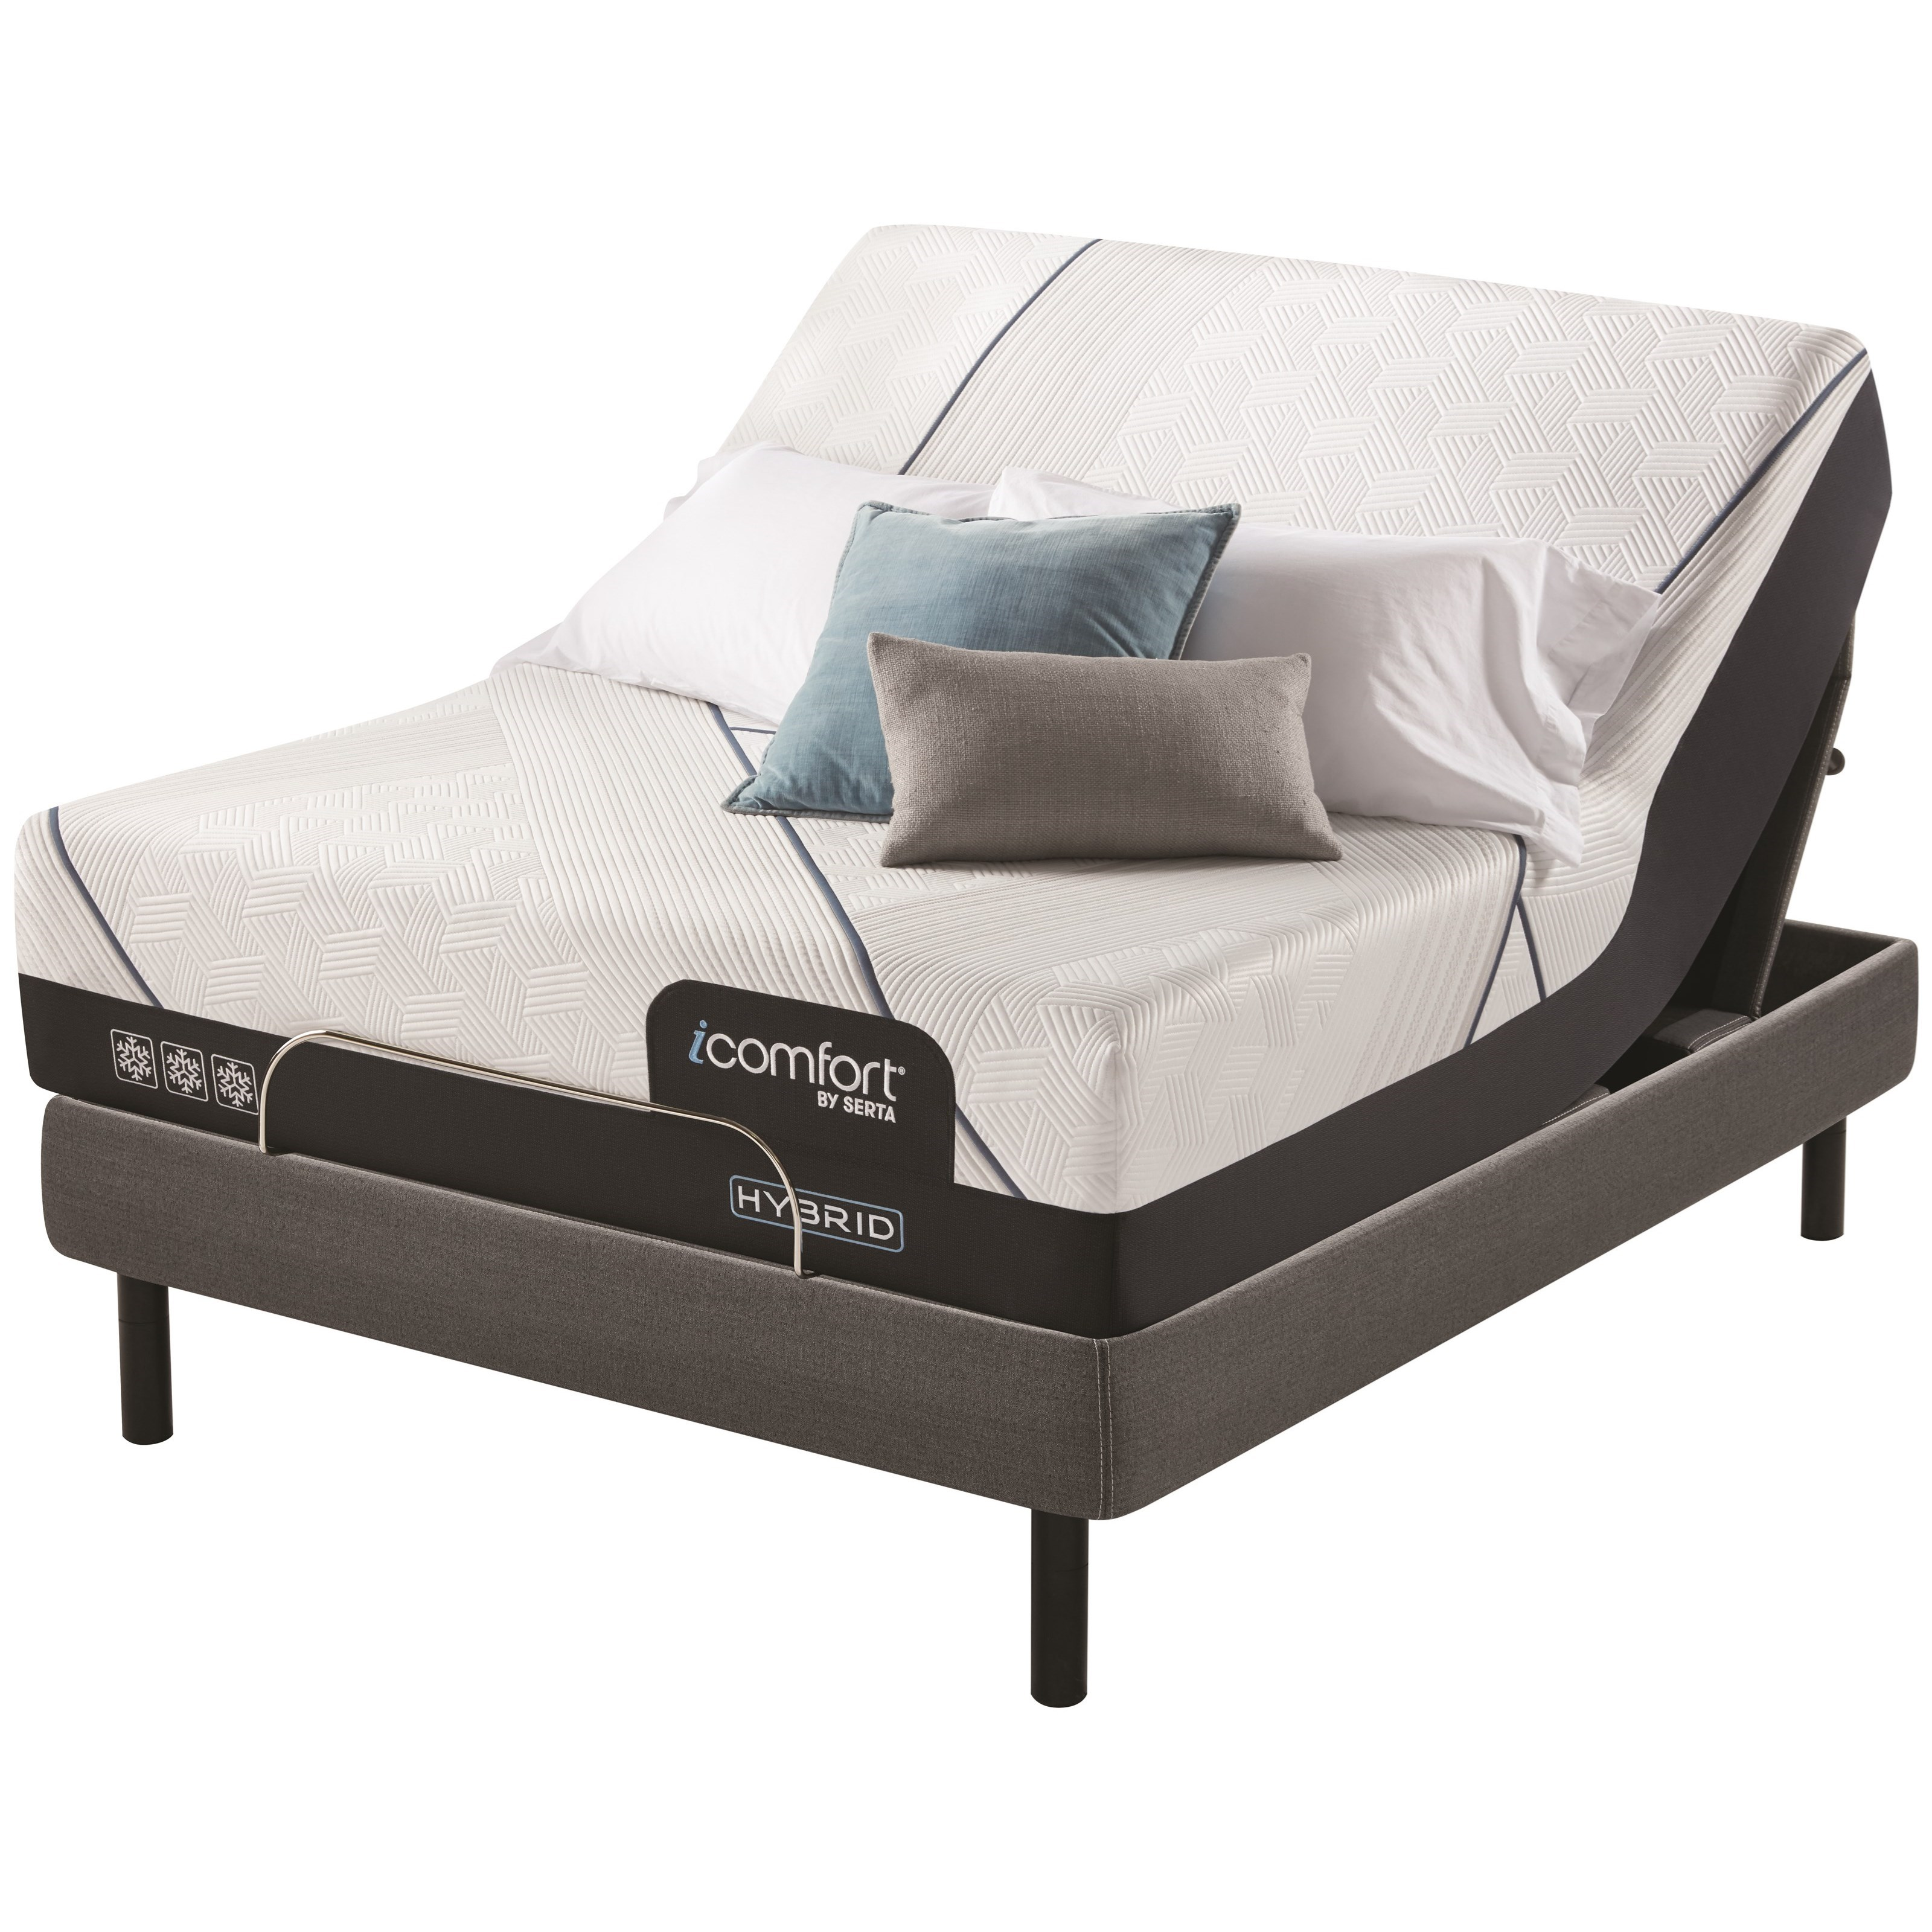 "CF4000 Hybrid Firm Queen 14"" Firm Hybrid Adj Set by Serta at Miller Waldrop Furniture and Decor"